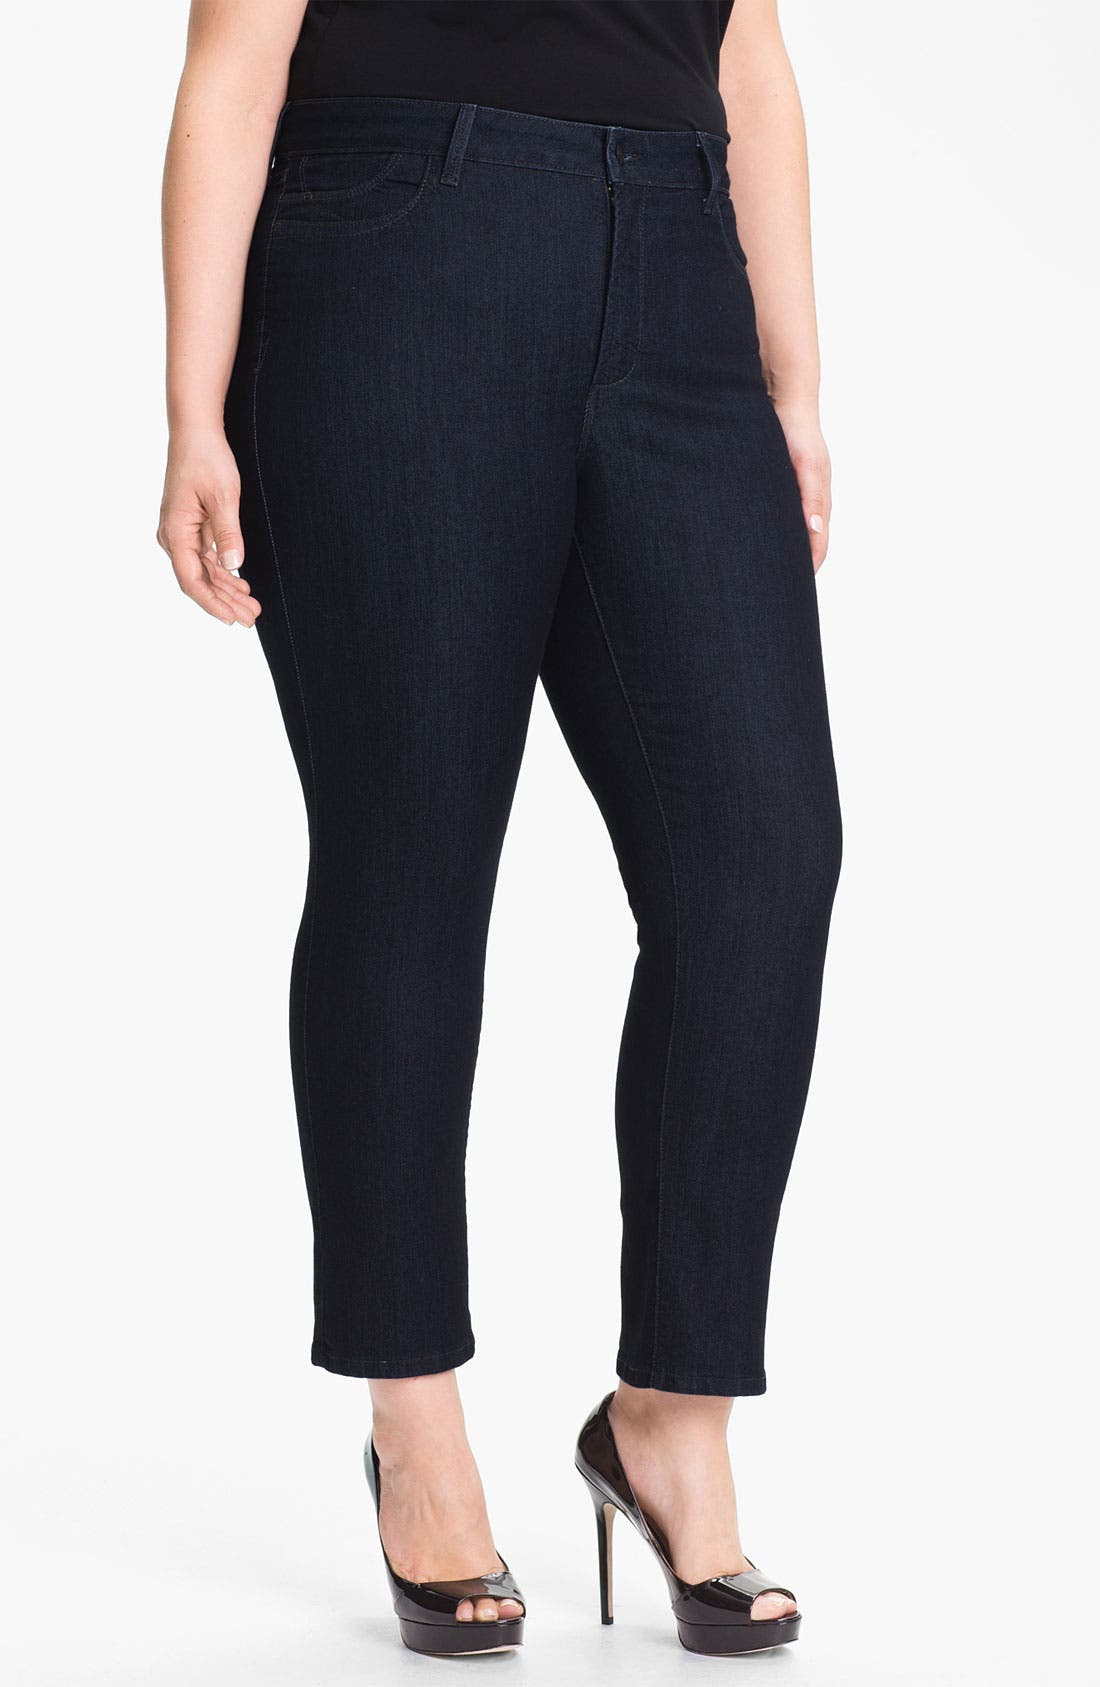 Alternate Image 1 Selected - NYDJ 'Audrey' Stretch Ankle Skinny Jeans (Plus Size)